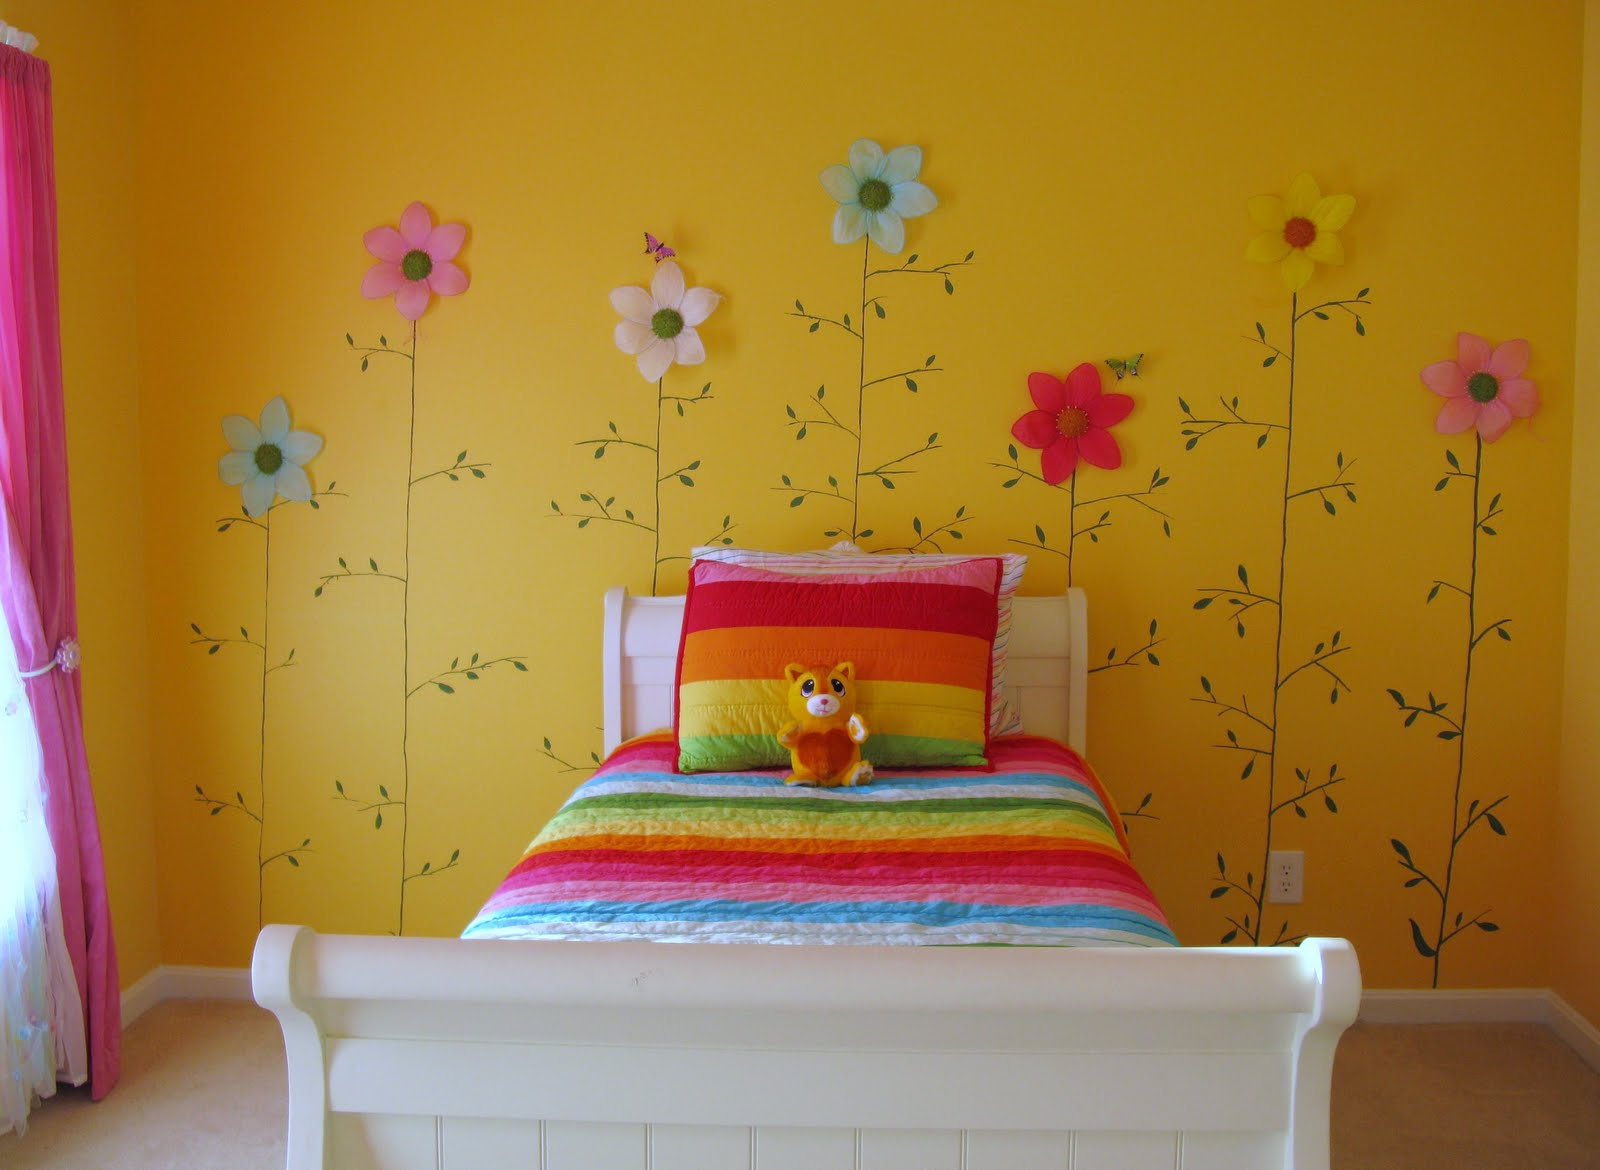 Kids bedroom painting ideas wallpress 1080p hd desktop Childrens bedroom paint